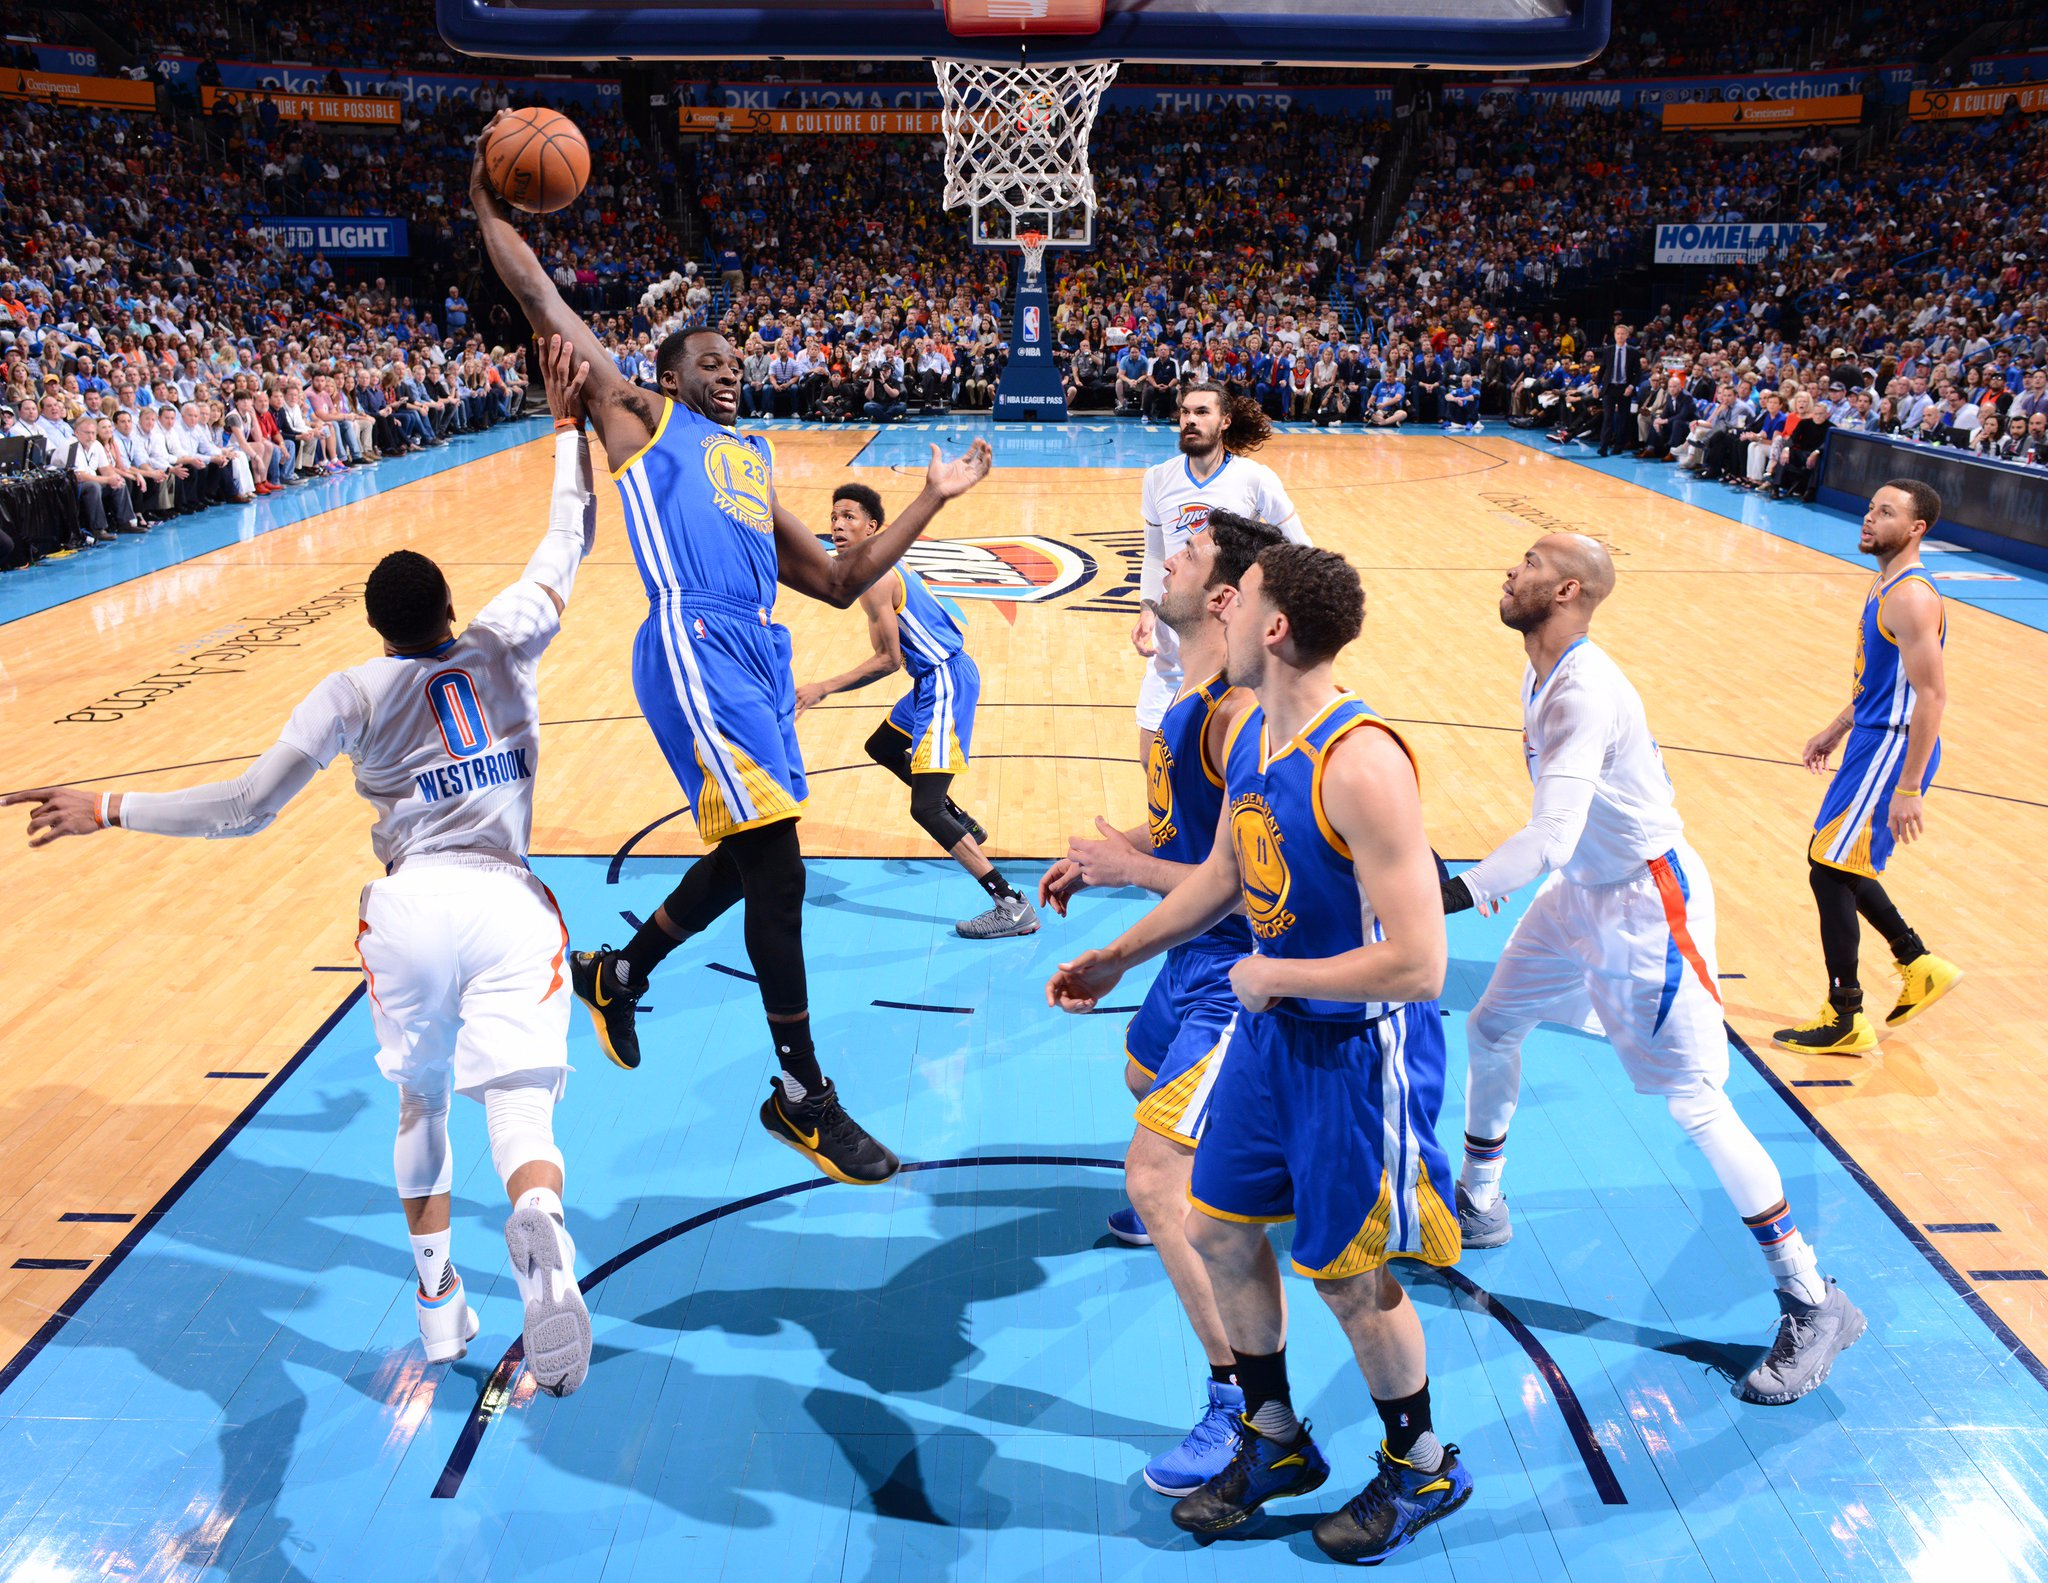 Steph (11p) got hot early and the Dubs are up after one on @NBAonTNT!  End of 1Q @warriors: 25 @okcthunder: 22 https://t.co/0Mup3nOZIY